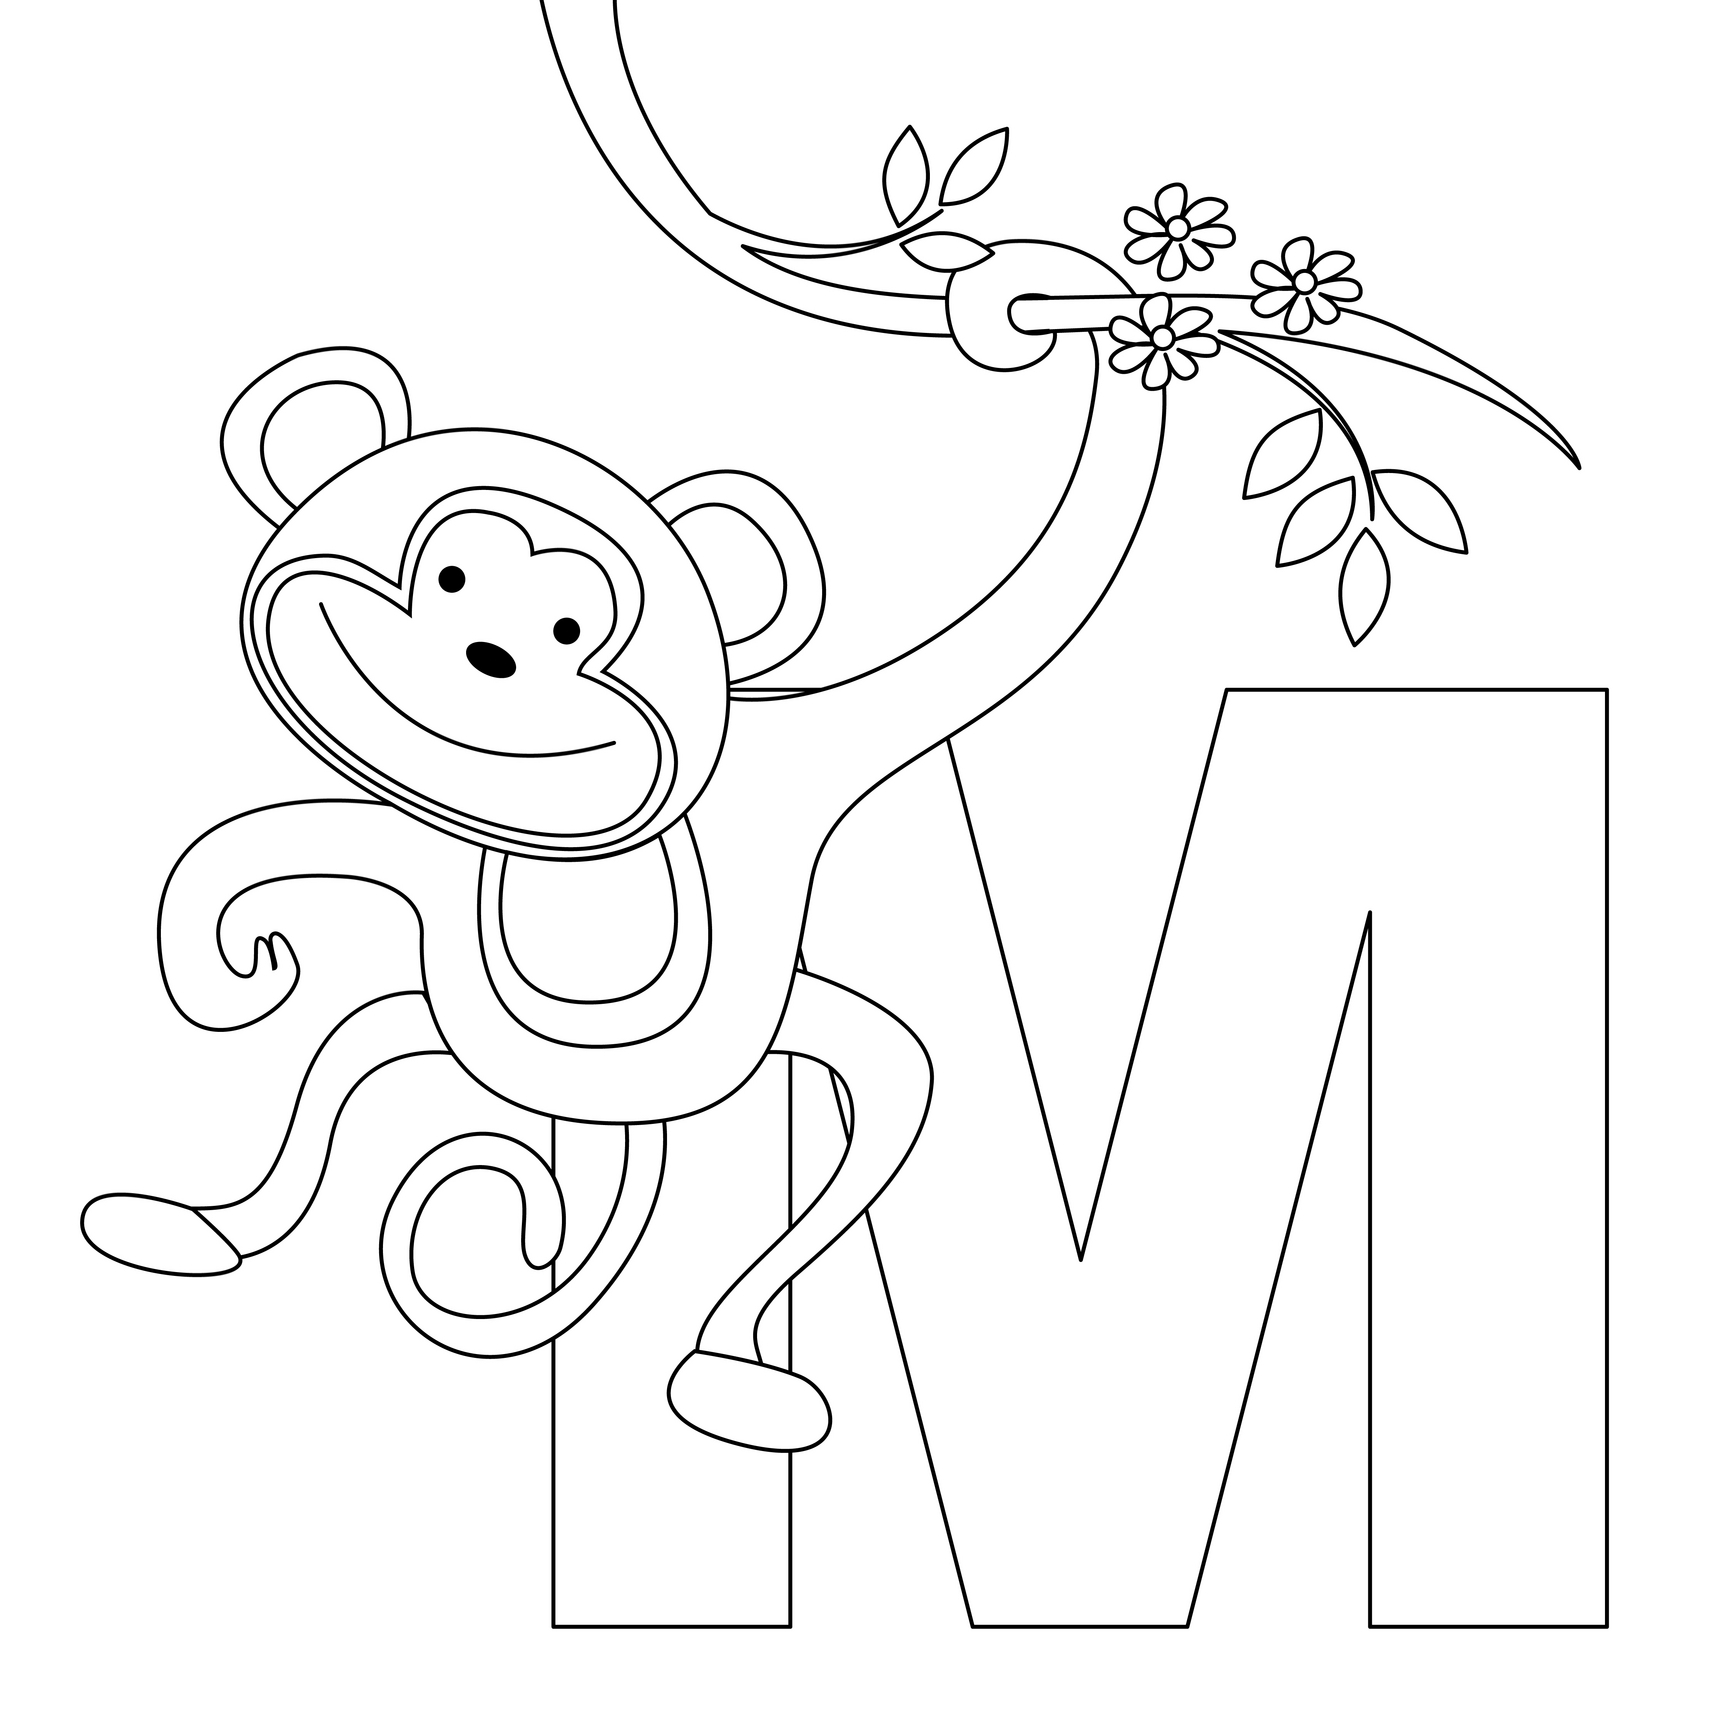 Letter M Drawing At Getdrawings Com Free For Personal Use Letter M